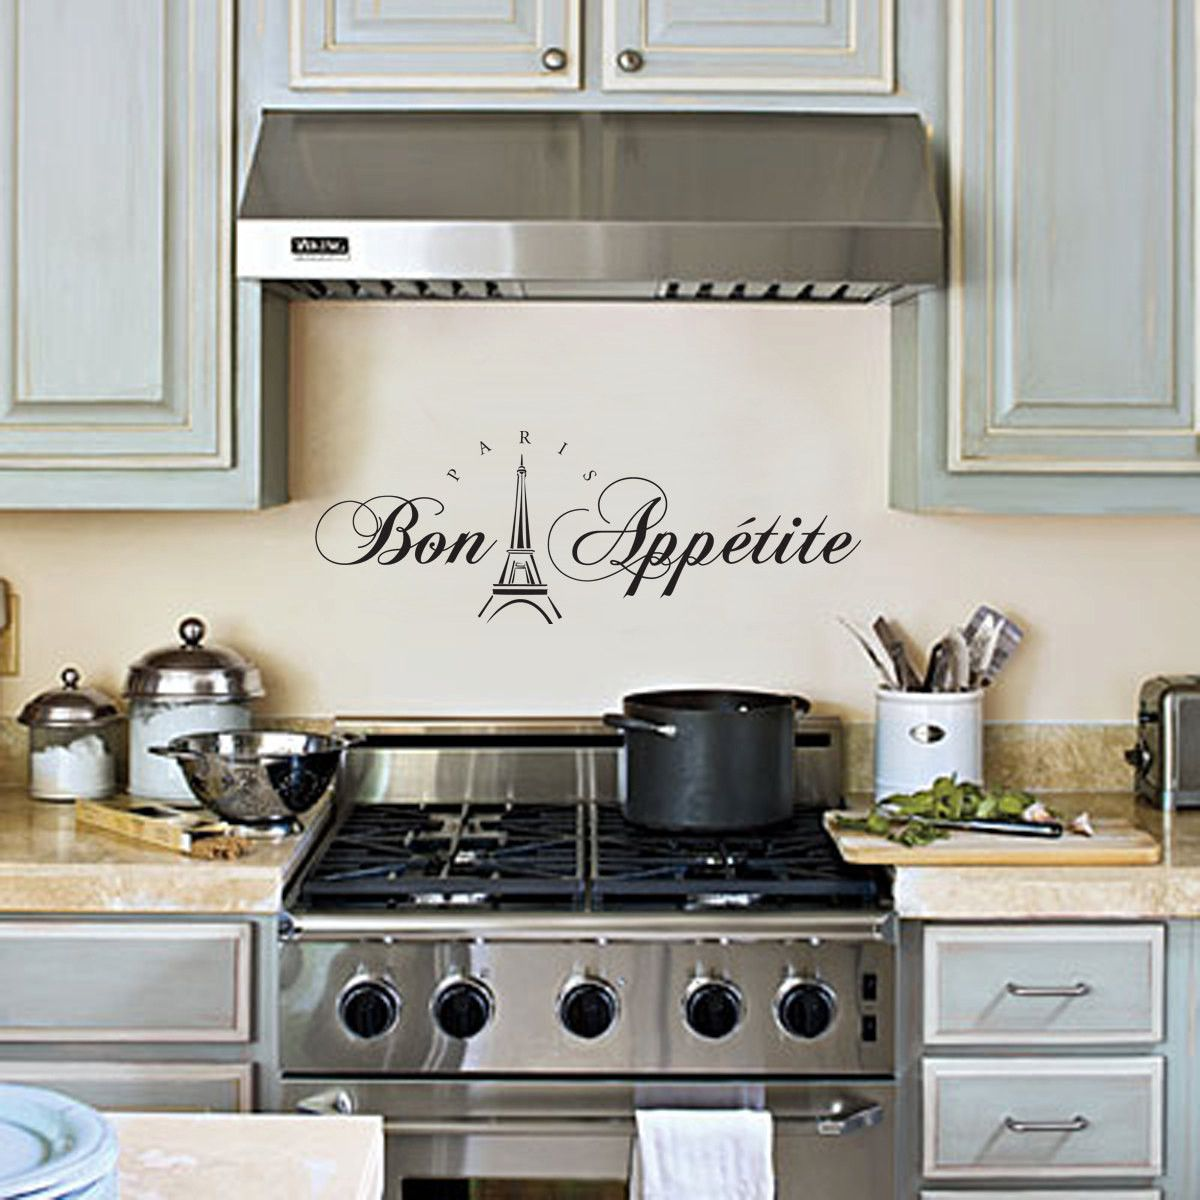 Bon appetit wall decal paris kitchen wall decor wall art wall bon appetit wall decal paris kitchen wall decor wall art wall sticker for the kitchen amipublicfo Choice Image